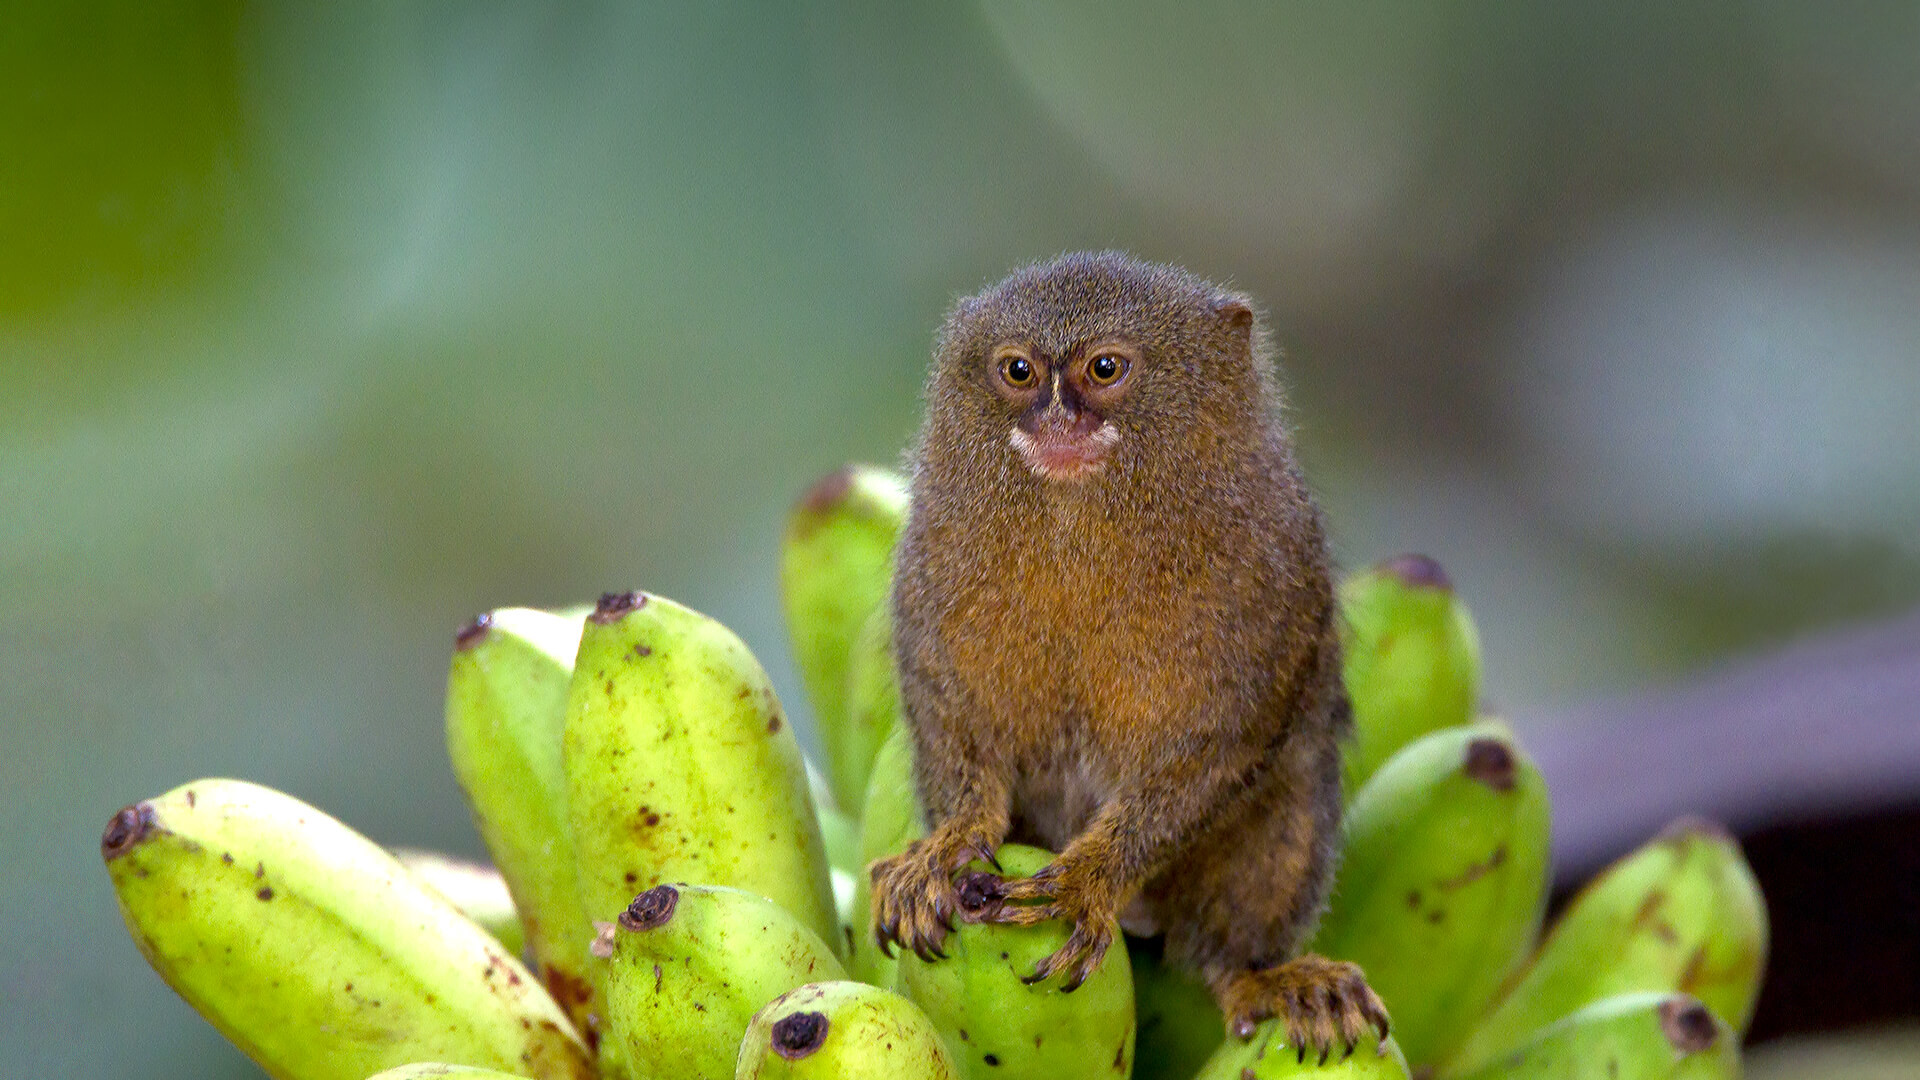 Res: 1920x1080, Pygmy marmoset sits on a bunch of bananas